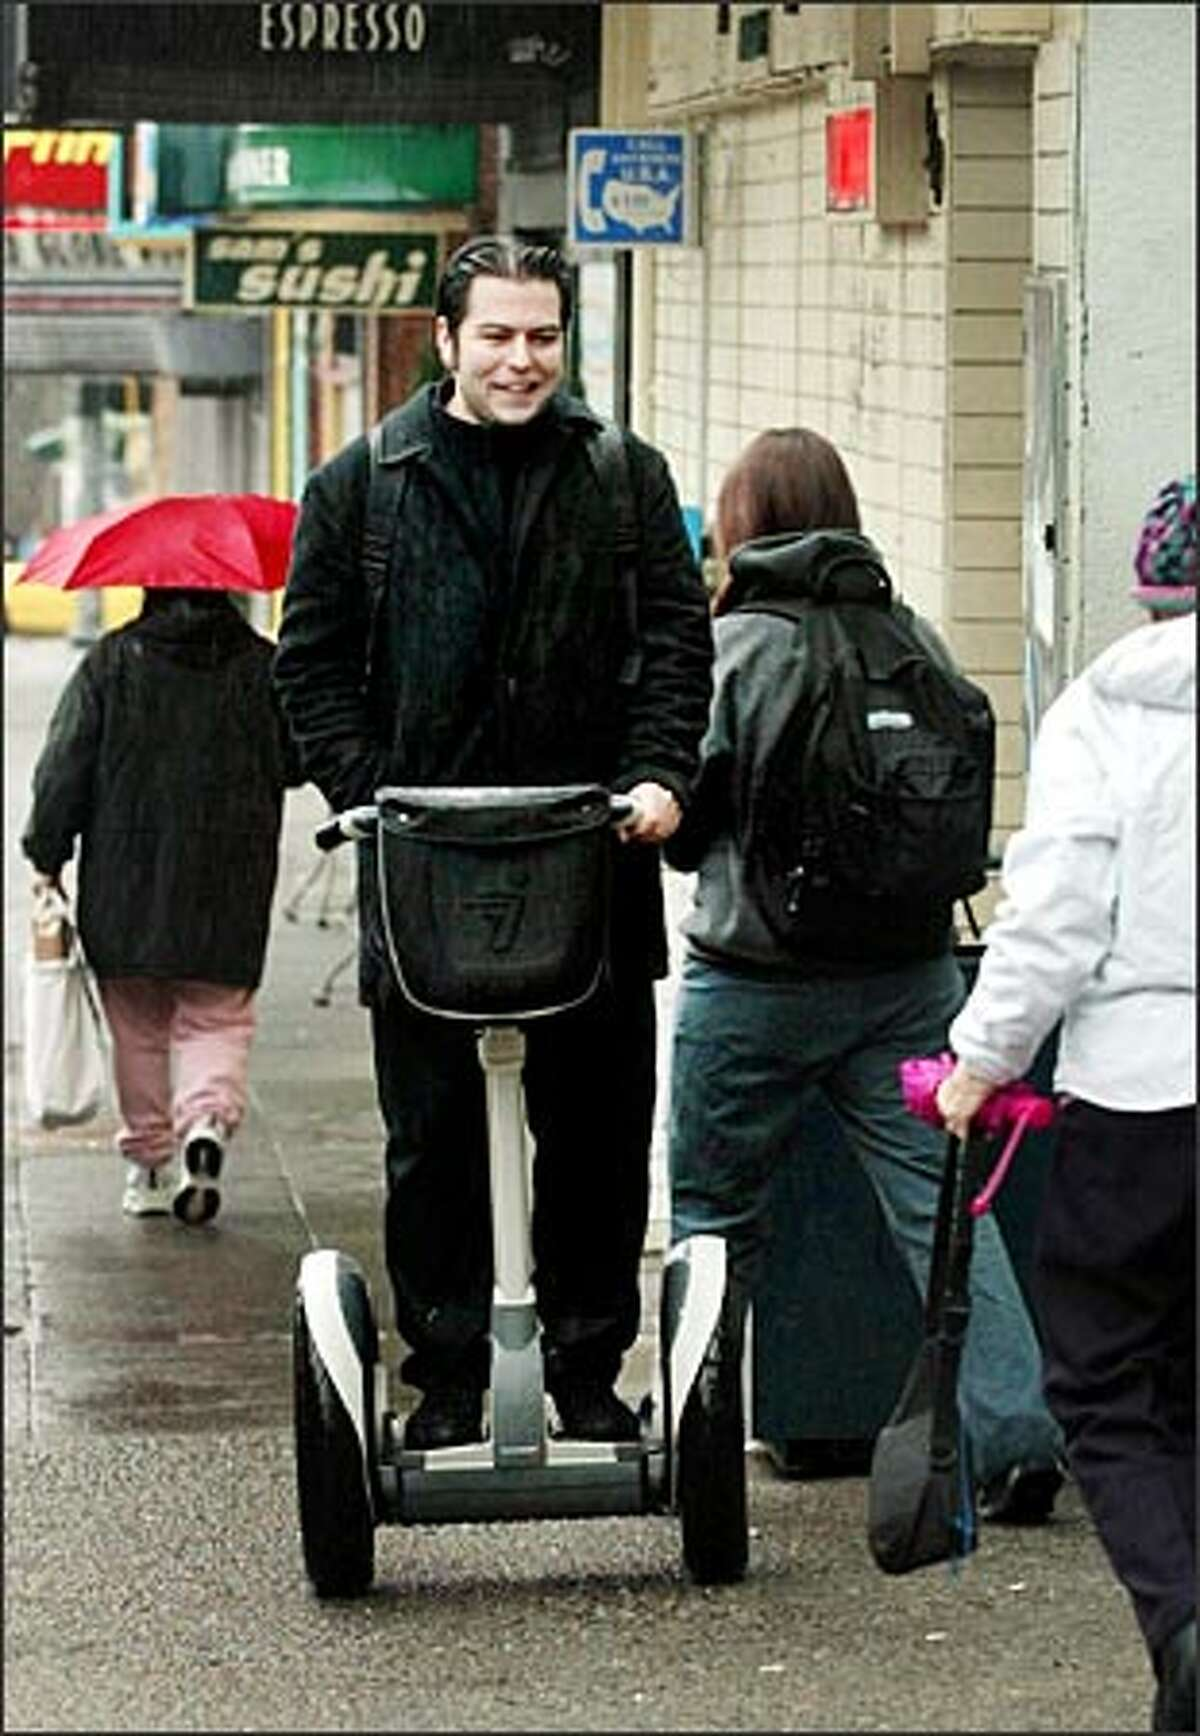 Phillip Torrone rides his Segway Human Transporter to work on Lower Queen Anne.